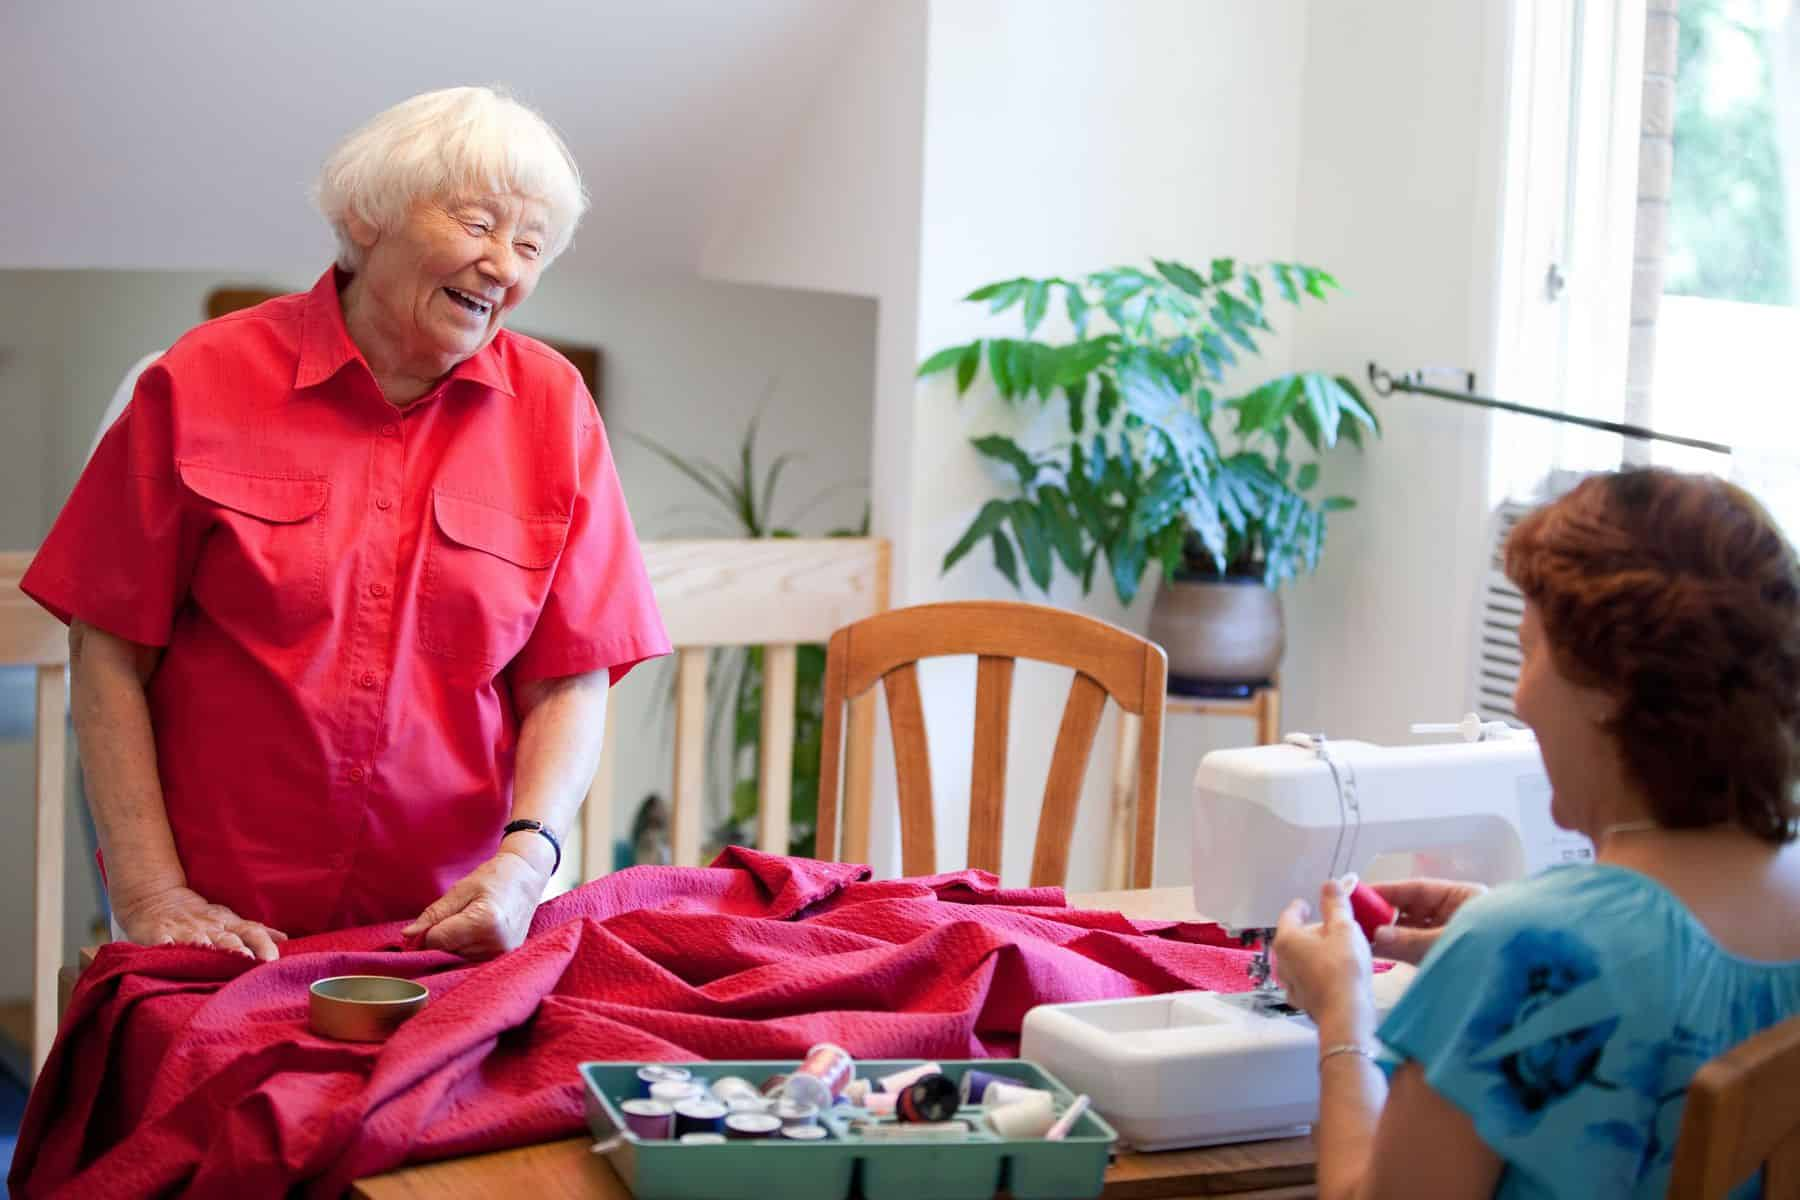 Volunteer helping senior with sewing project